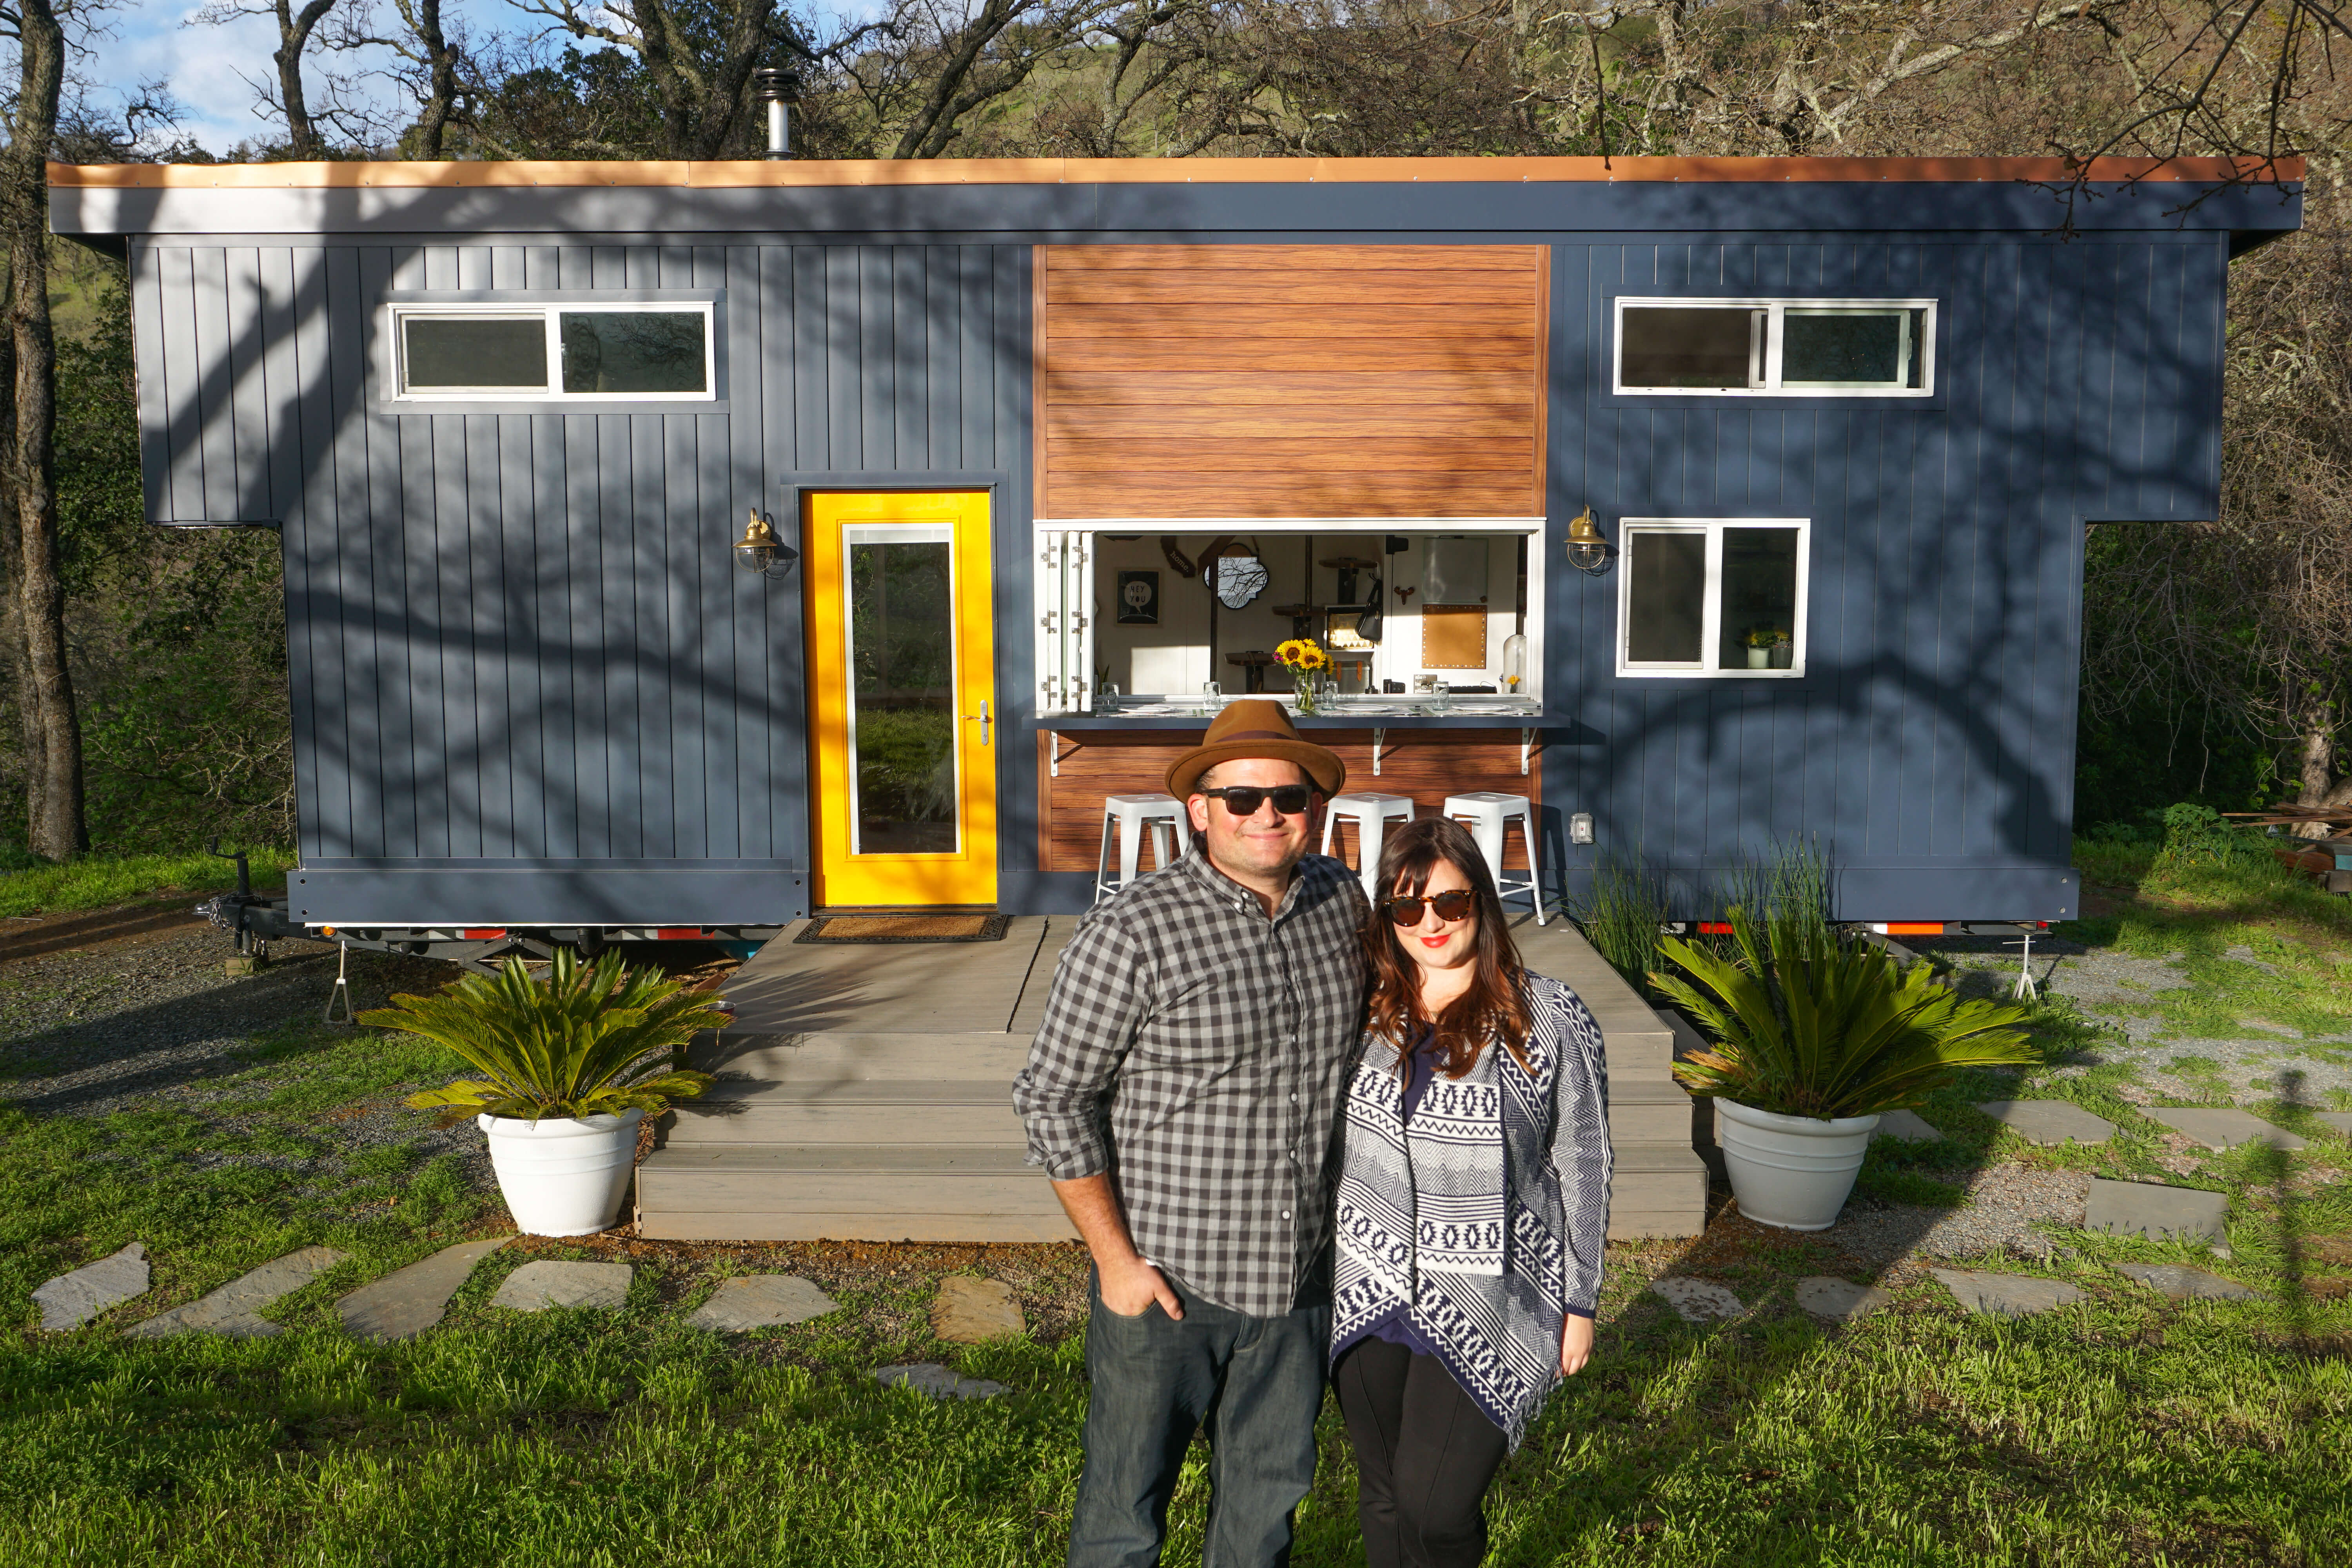 Stupendous Taking Center Stage At The Tiny House Living Festival Tiny Download Free Architecture Designs Xaembritishbridgeorg